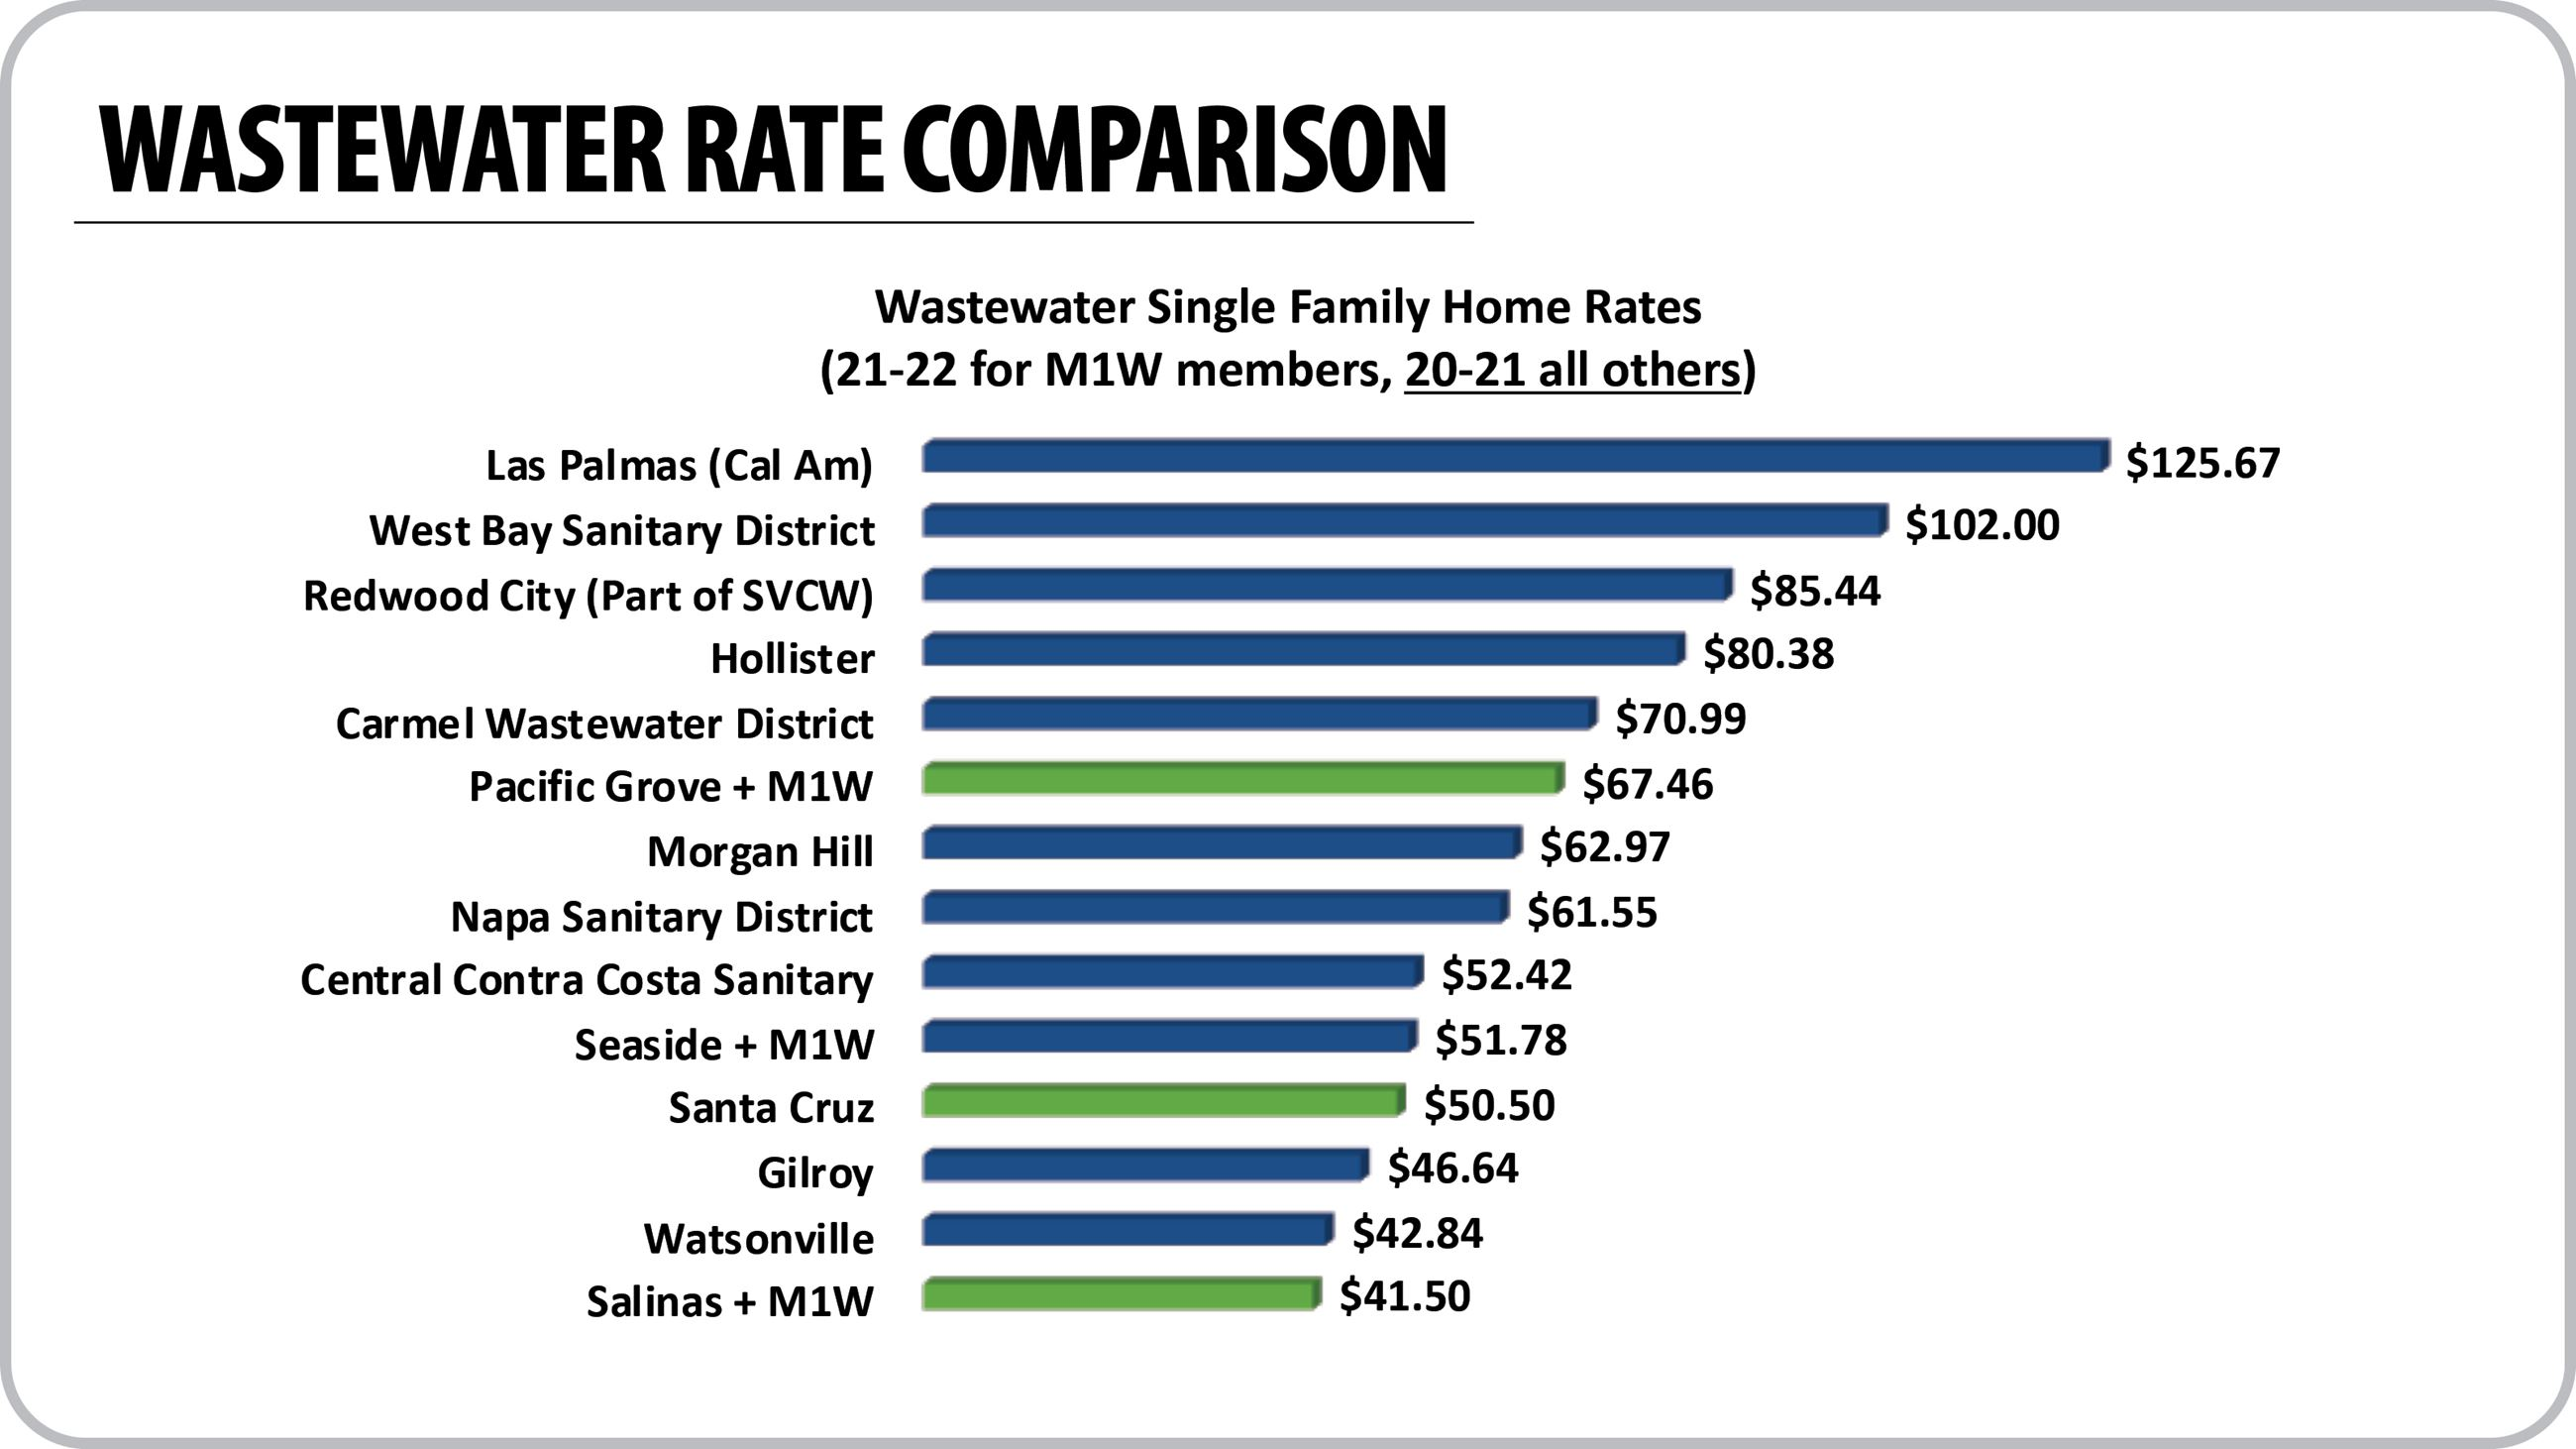 Chart comparing the Agency's rates to other local sewer service providers